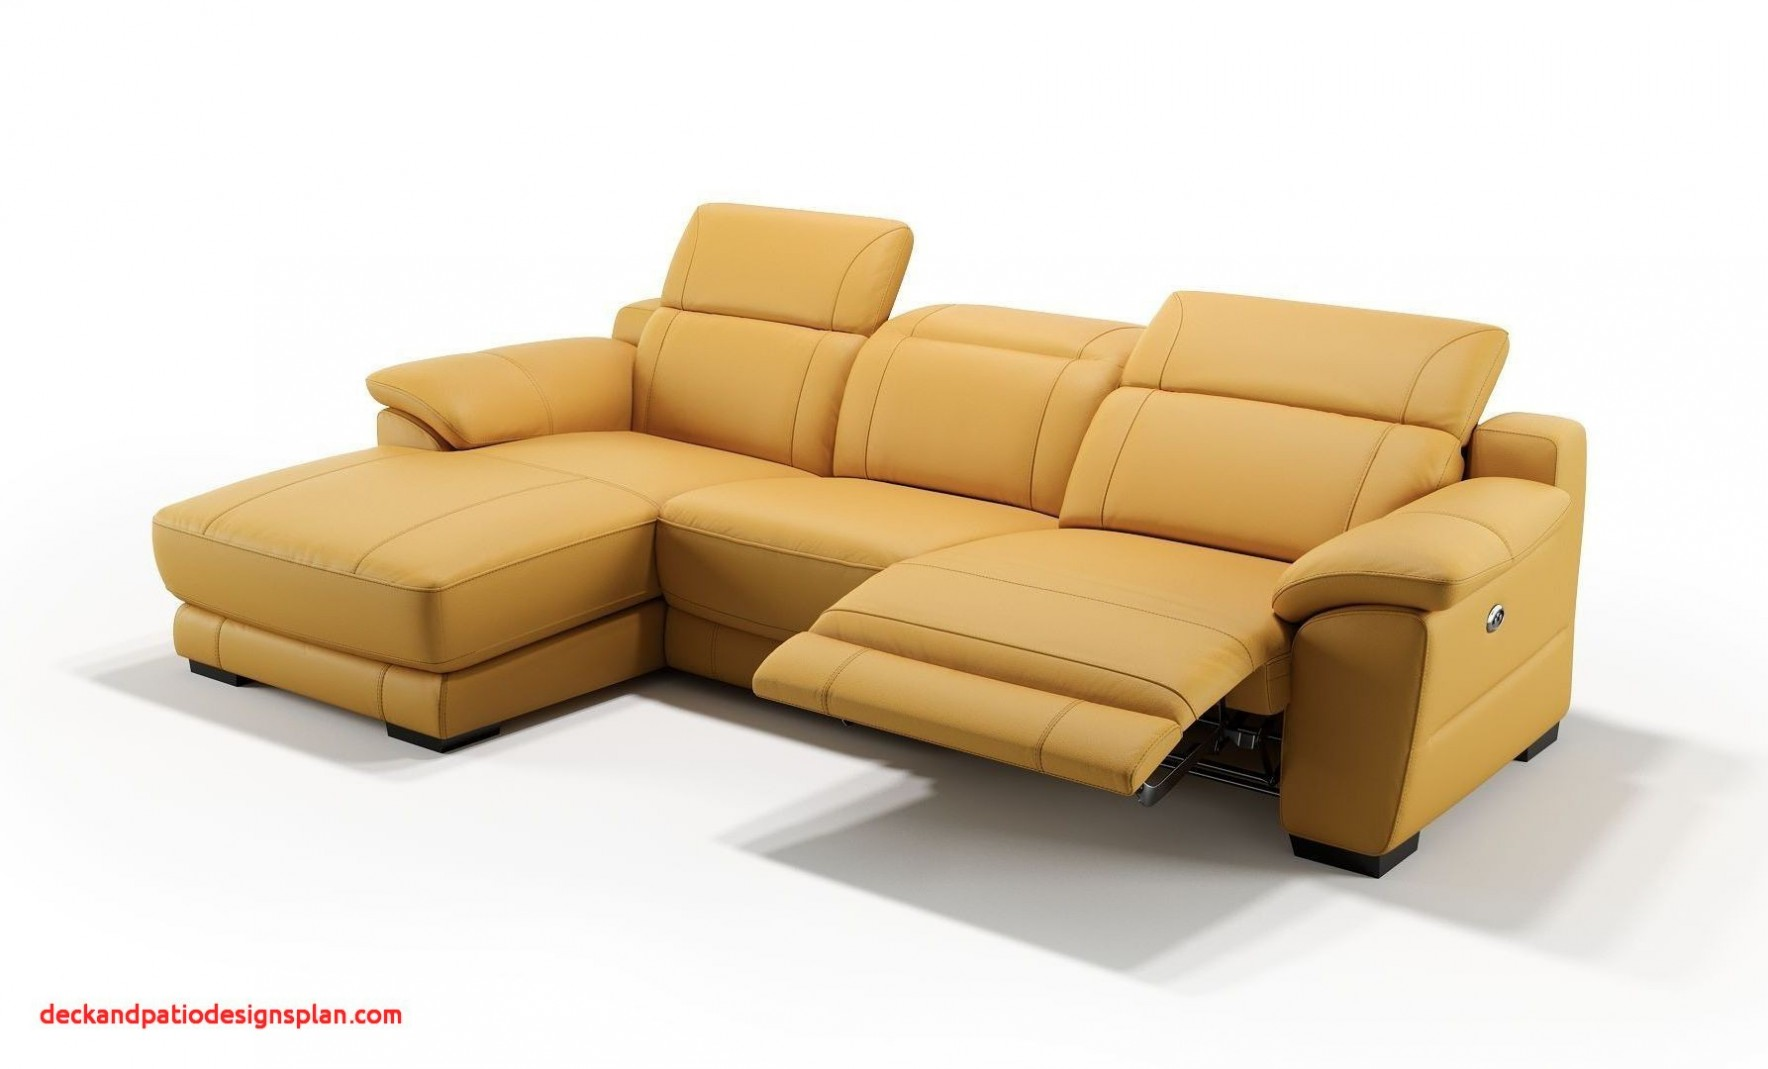 Ikea Sofa Mit Relaxfunktion Sessel Rund — Vianova Project